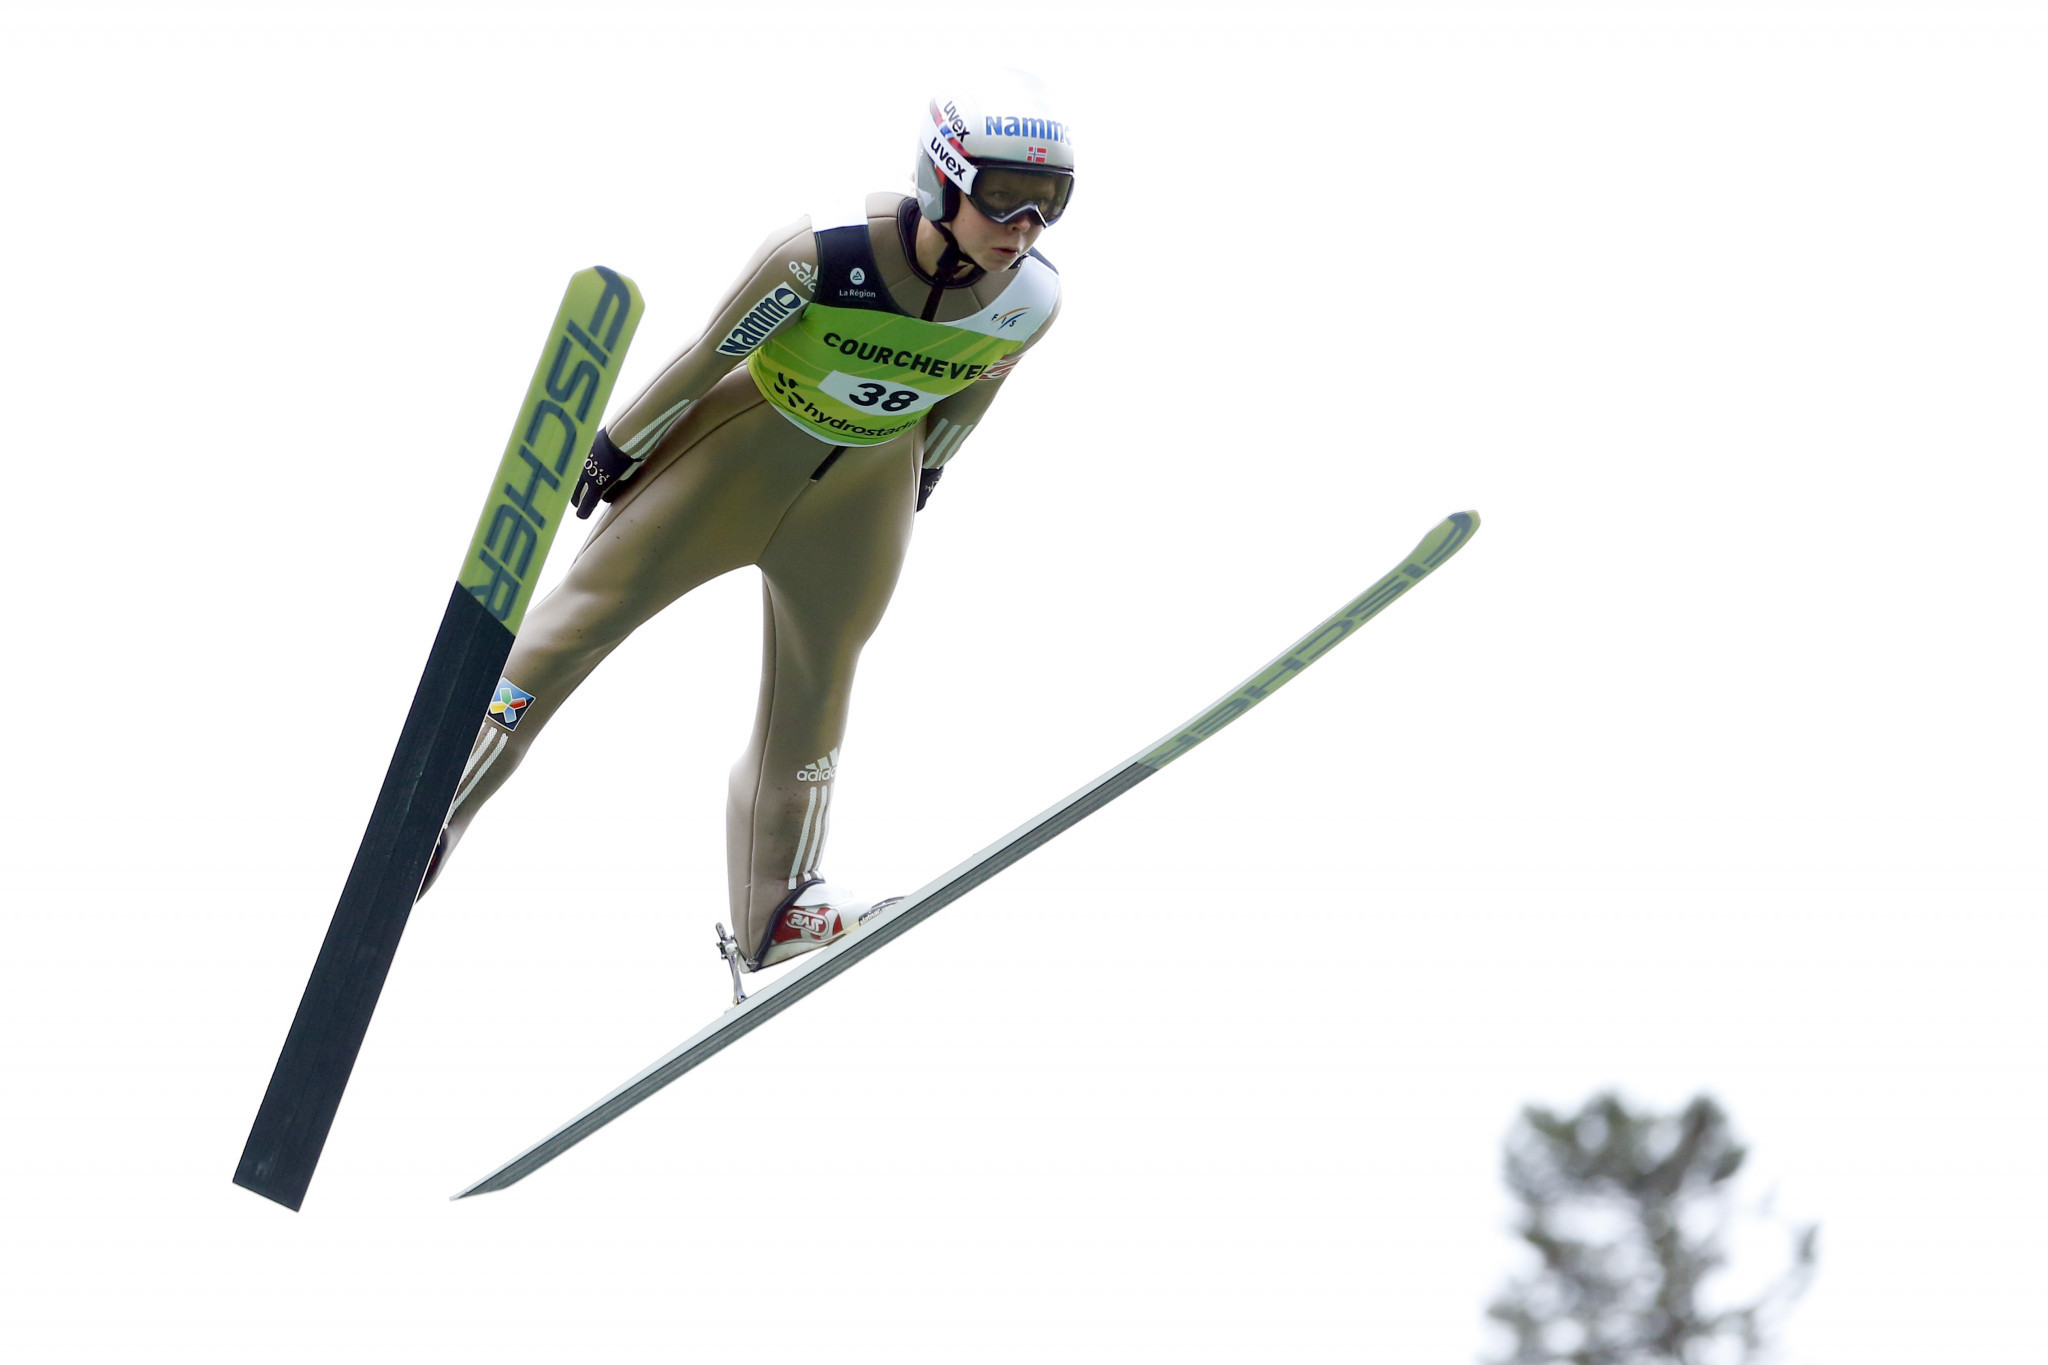 Lundby and Takanashi looking good for ski jump success after qualifying in Lillehammer